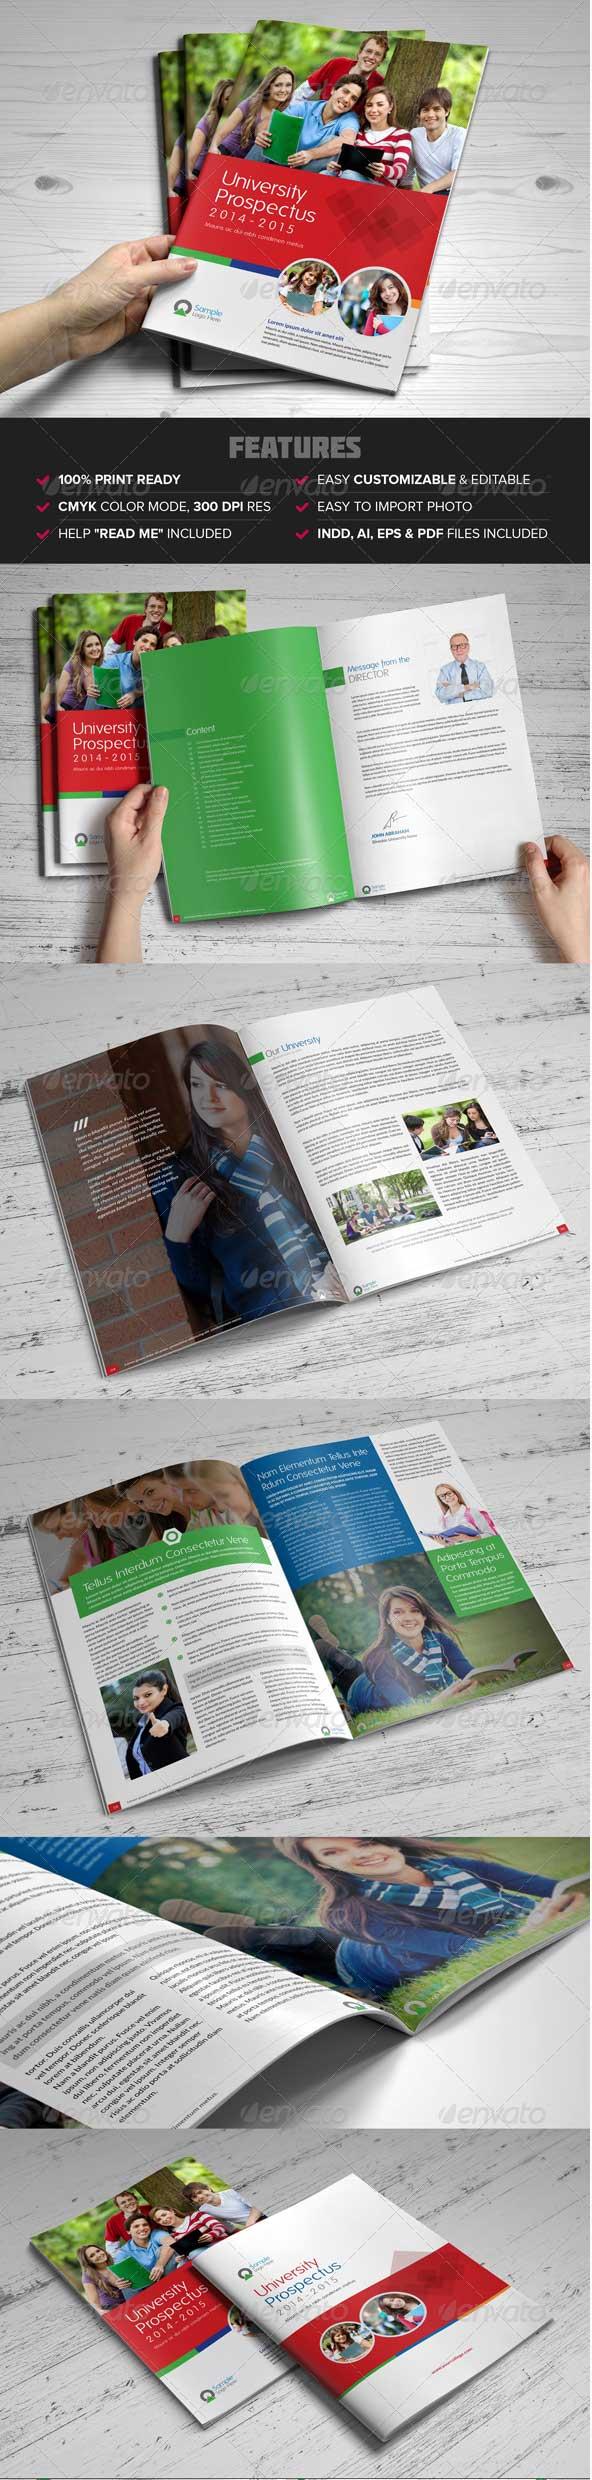 college-university-prospectus-magazine